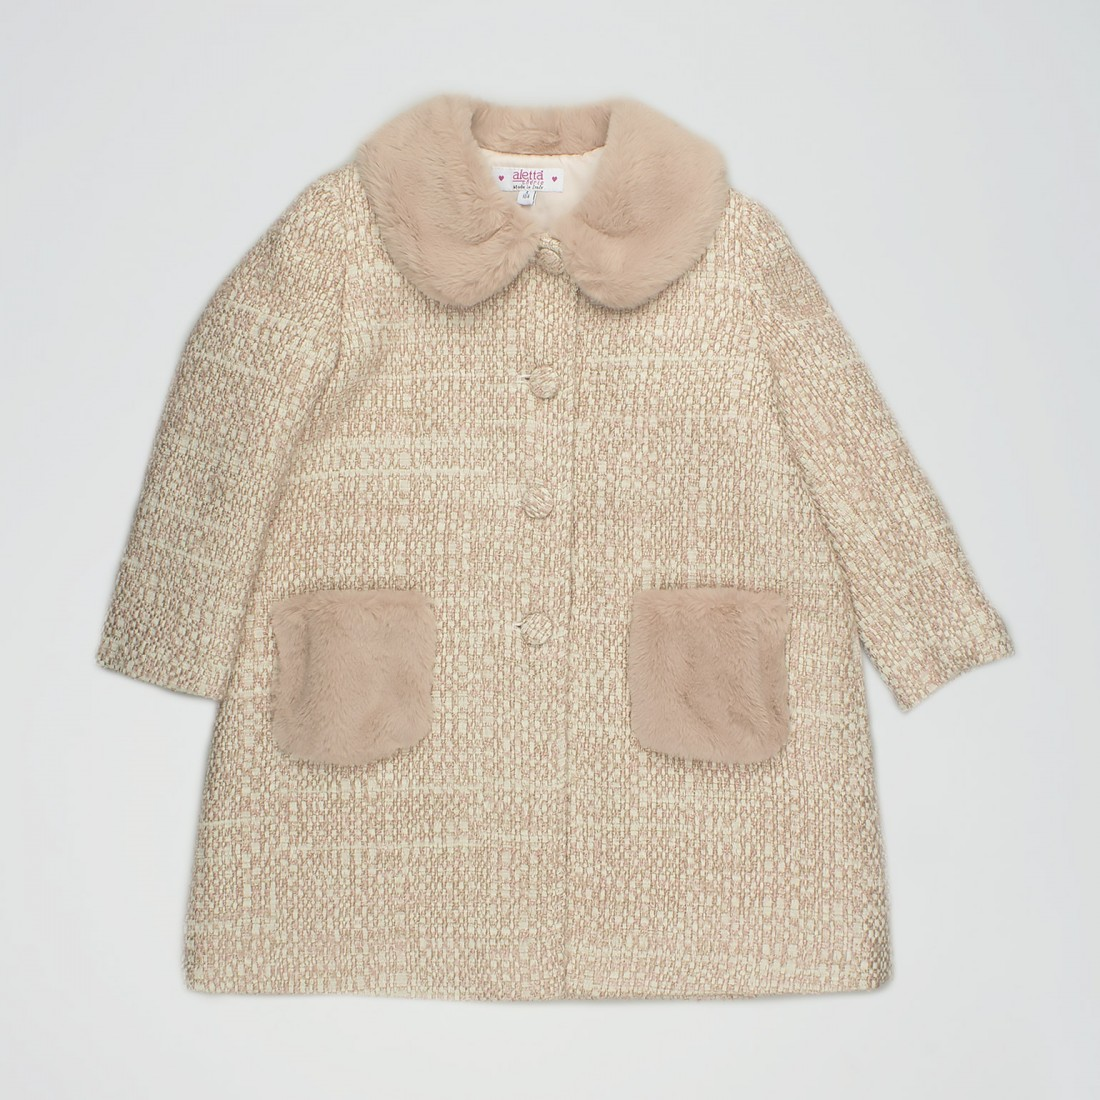 Cappotto in tweed panna e rosa pastello con eco-pelliccia